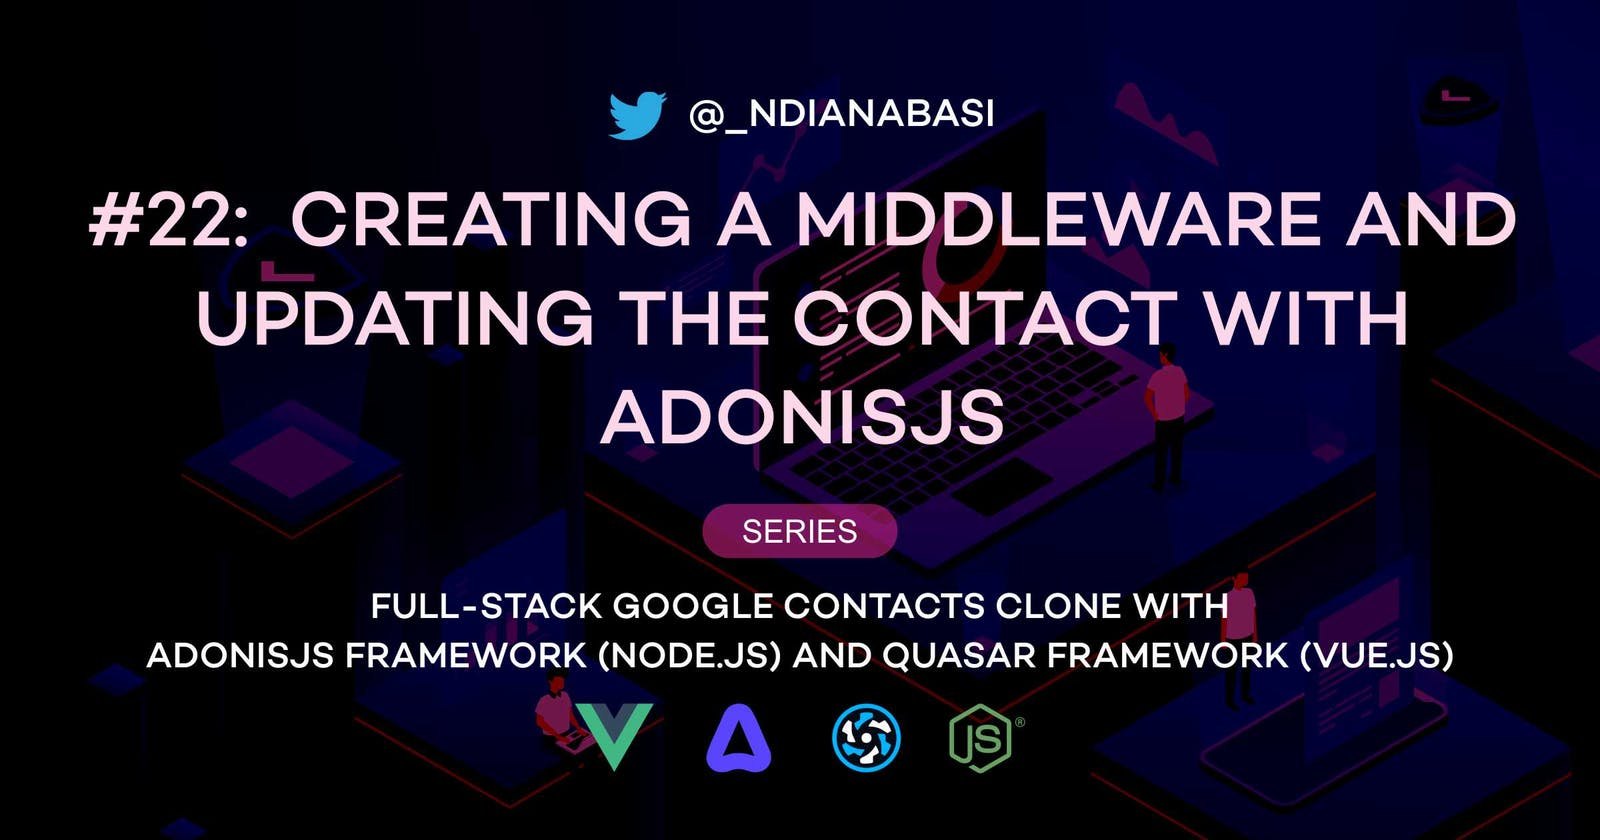 Creating a Middleware and Updating a Contact | Full-Stack Google Contacts Clone with AdonisJS (Node.js) and Quasar Framework (Vue.js)